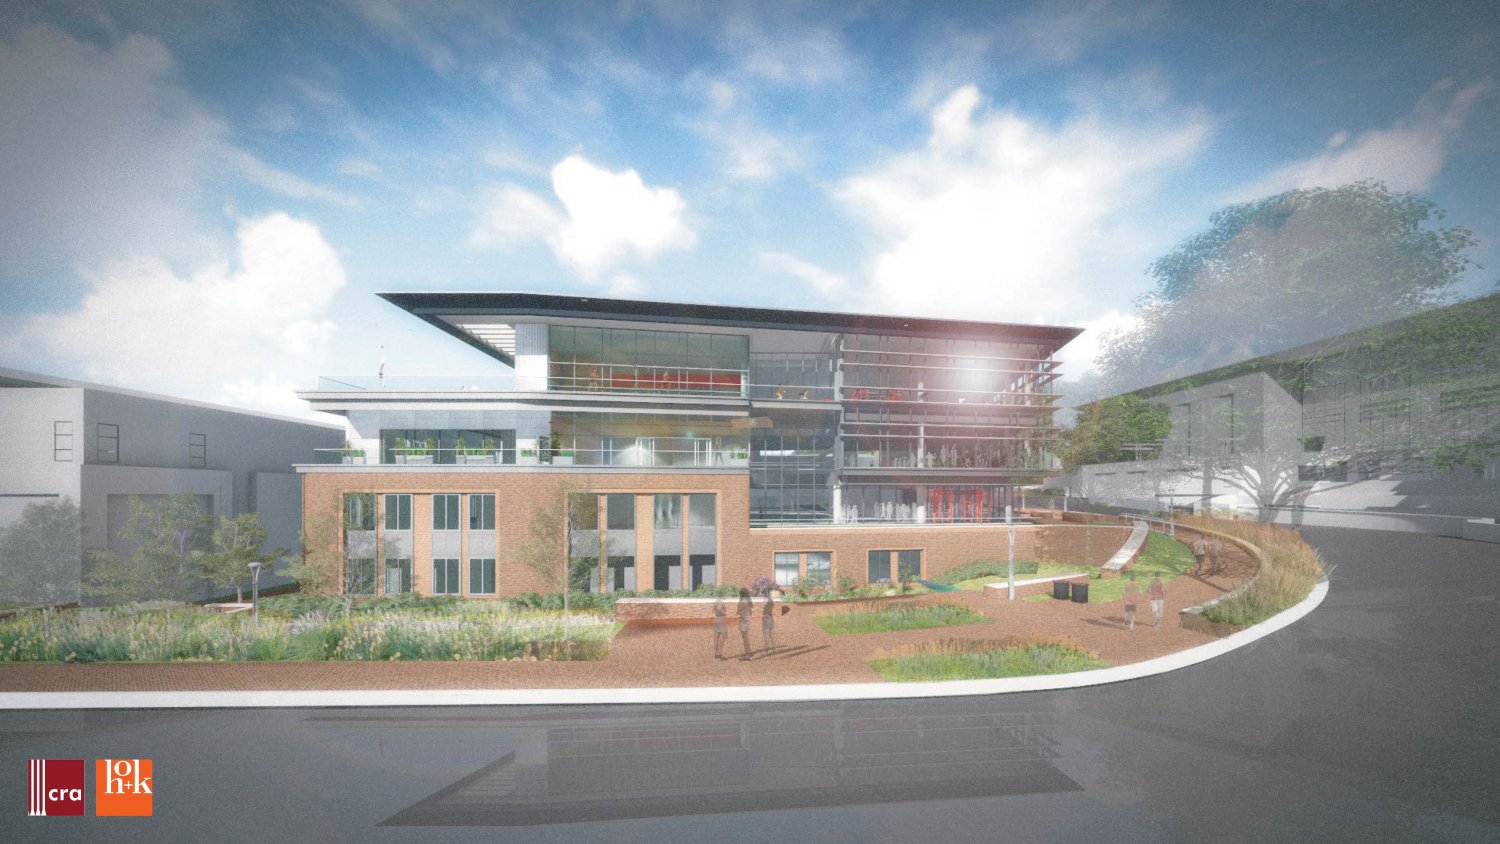 Rendering of the exterior of the new Wellness and Recreation Center